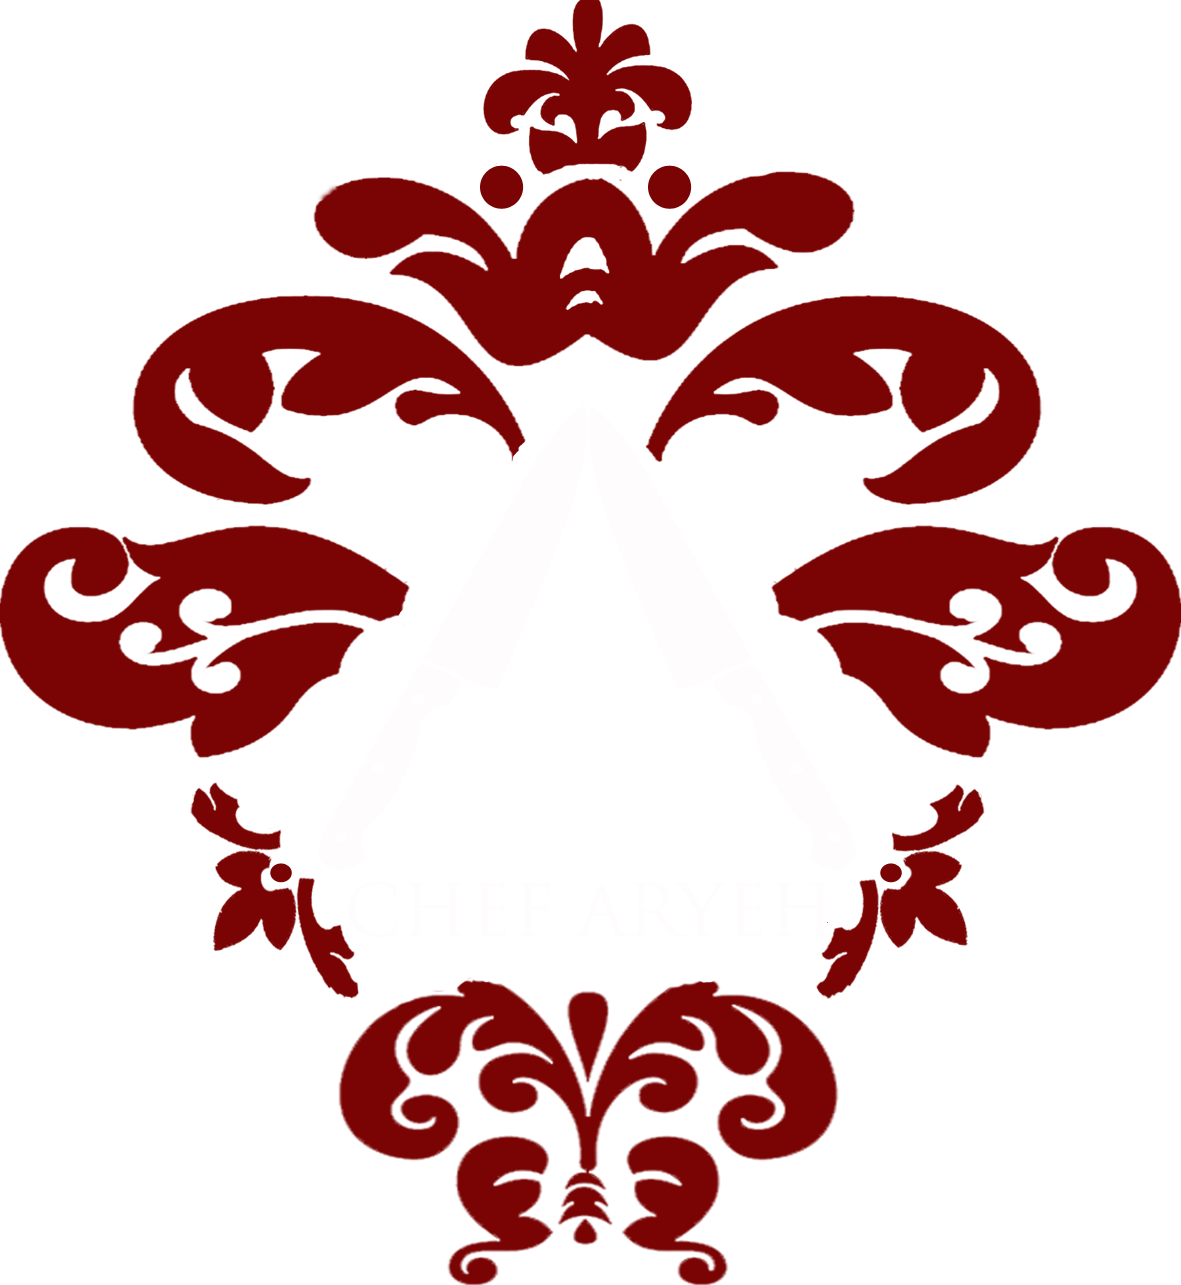 Chef Aryeh